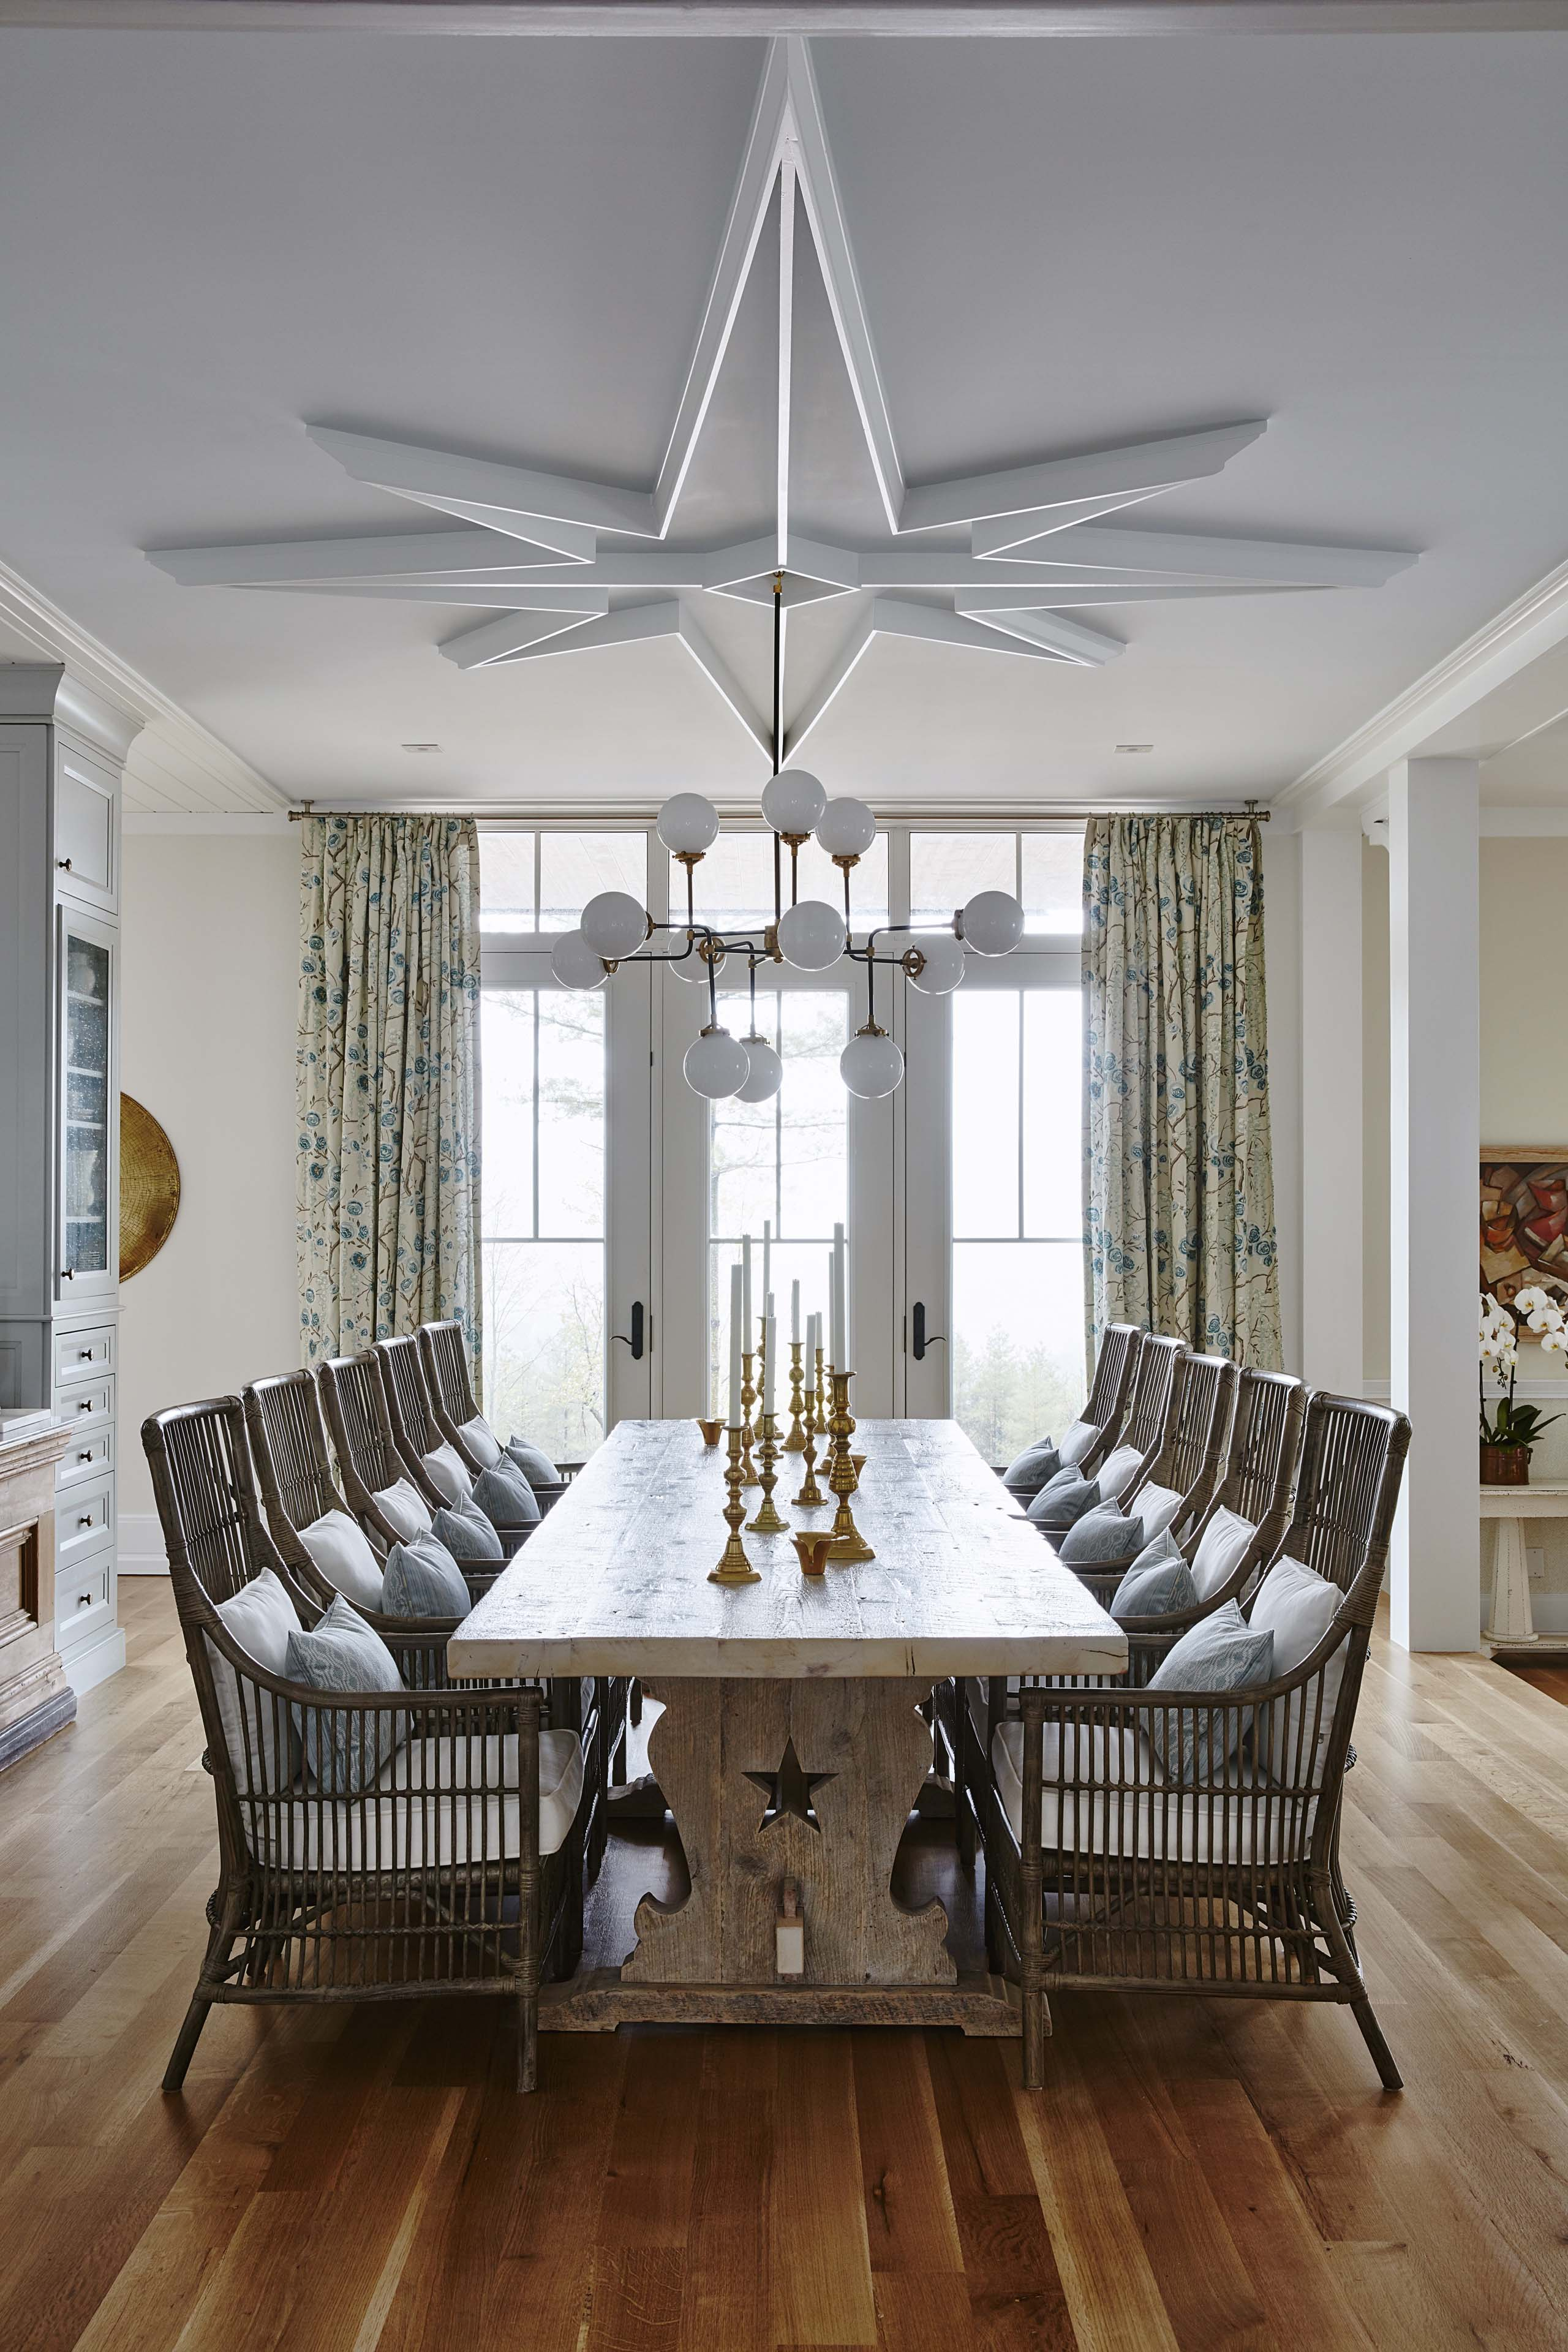 Modern farmhouse dining room with rustic farm table and statement medallion at ceiling. #SarahRichardson #farmhousediningroom